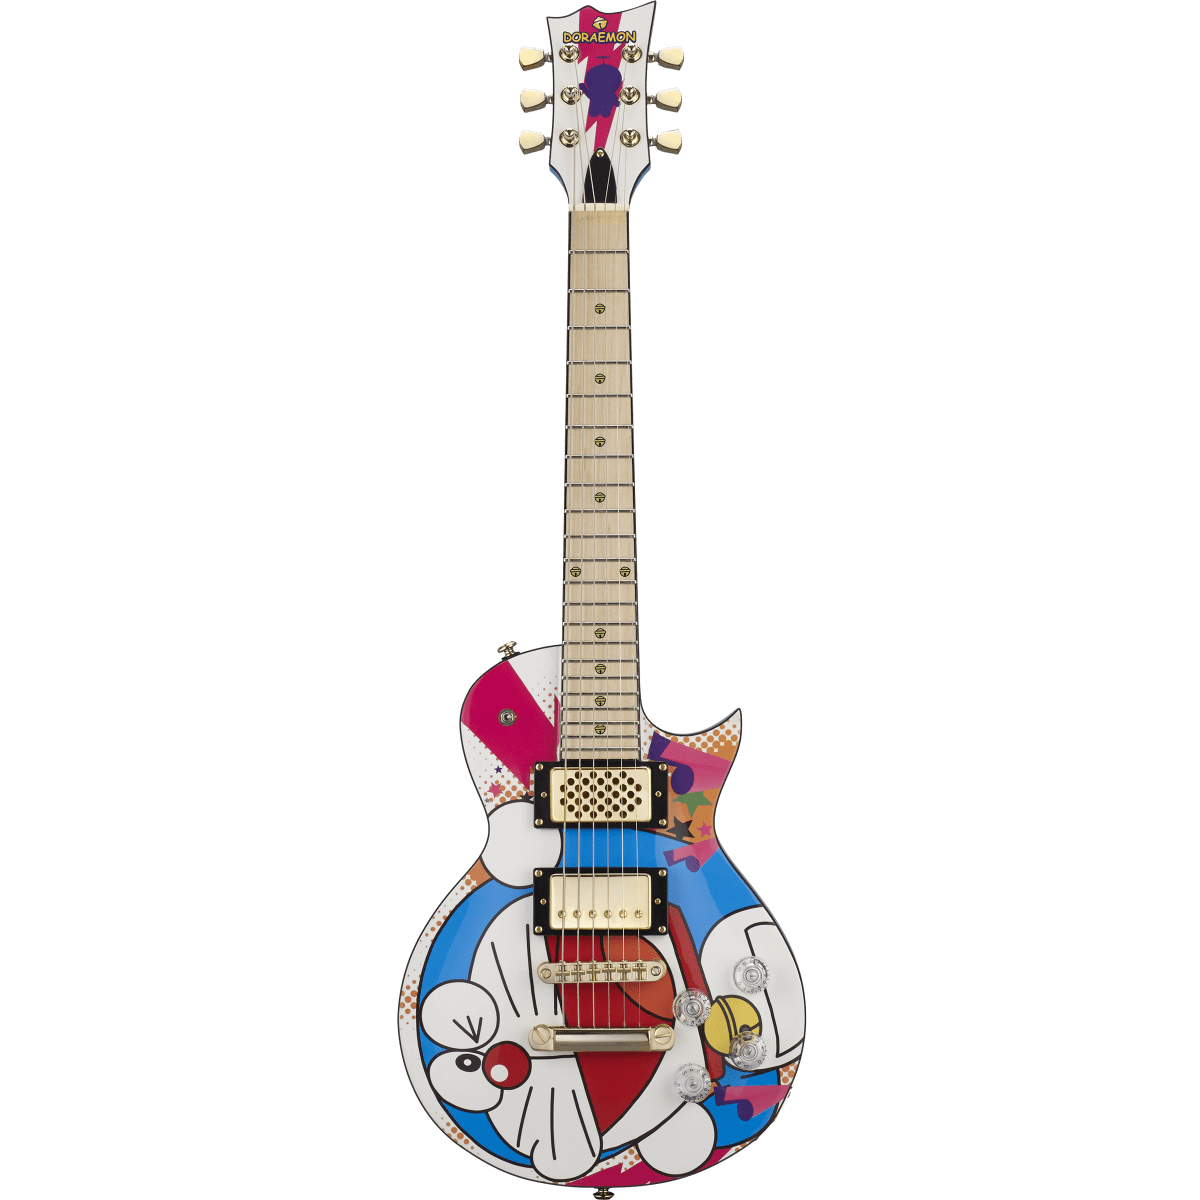 DORAEMON mini guitar [ 藤子・F・不二雄 生誕80周年 ]